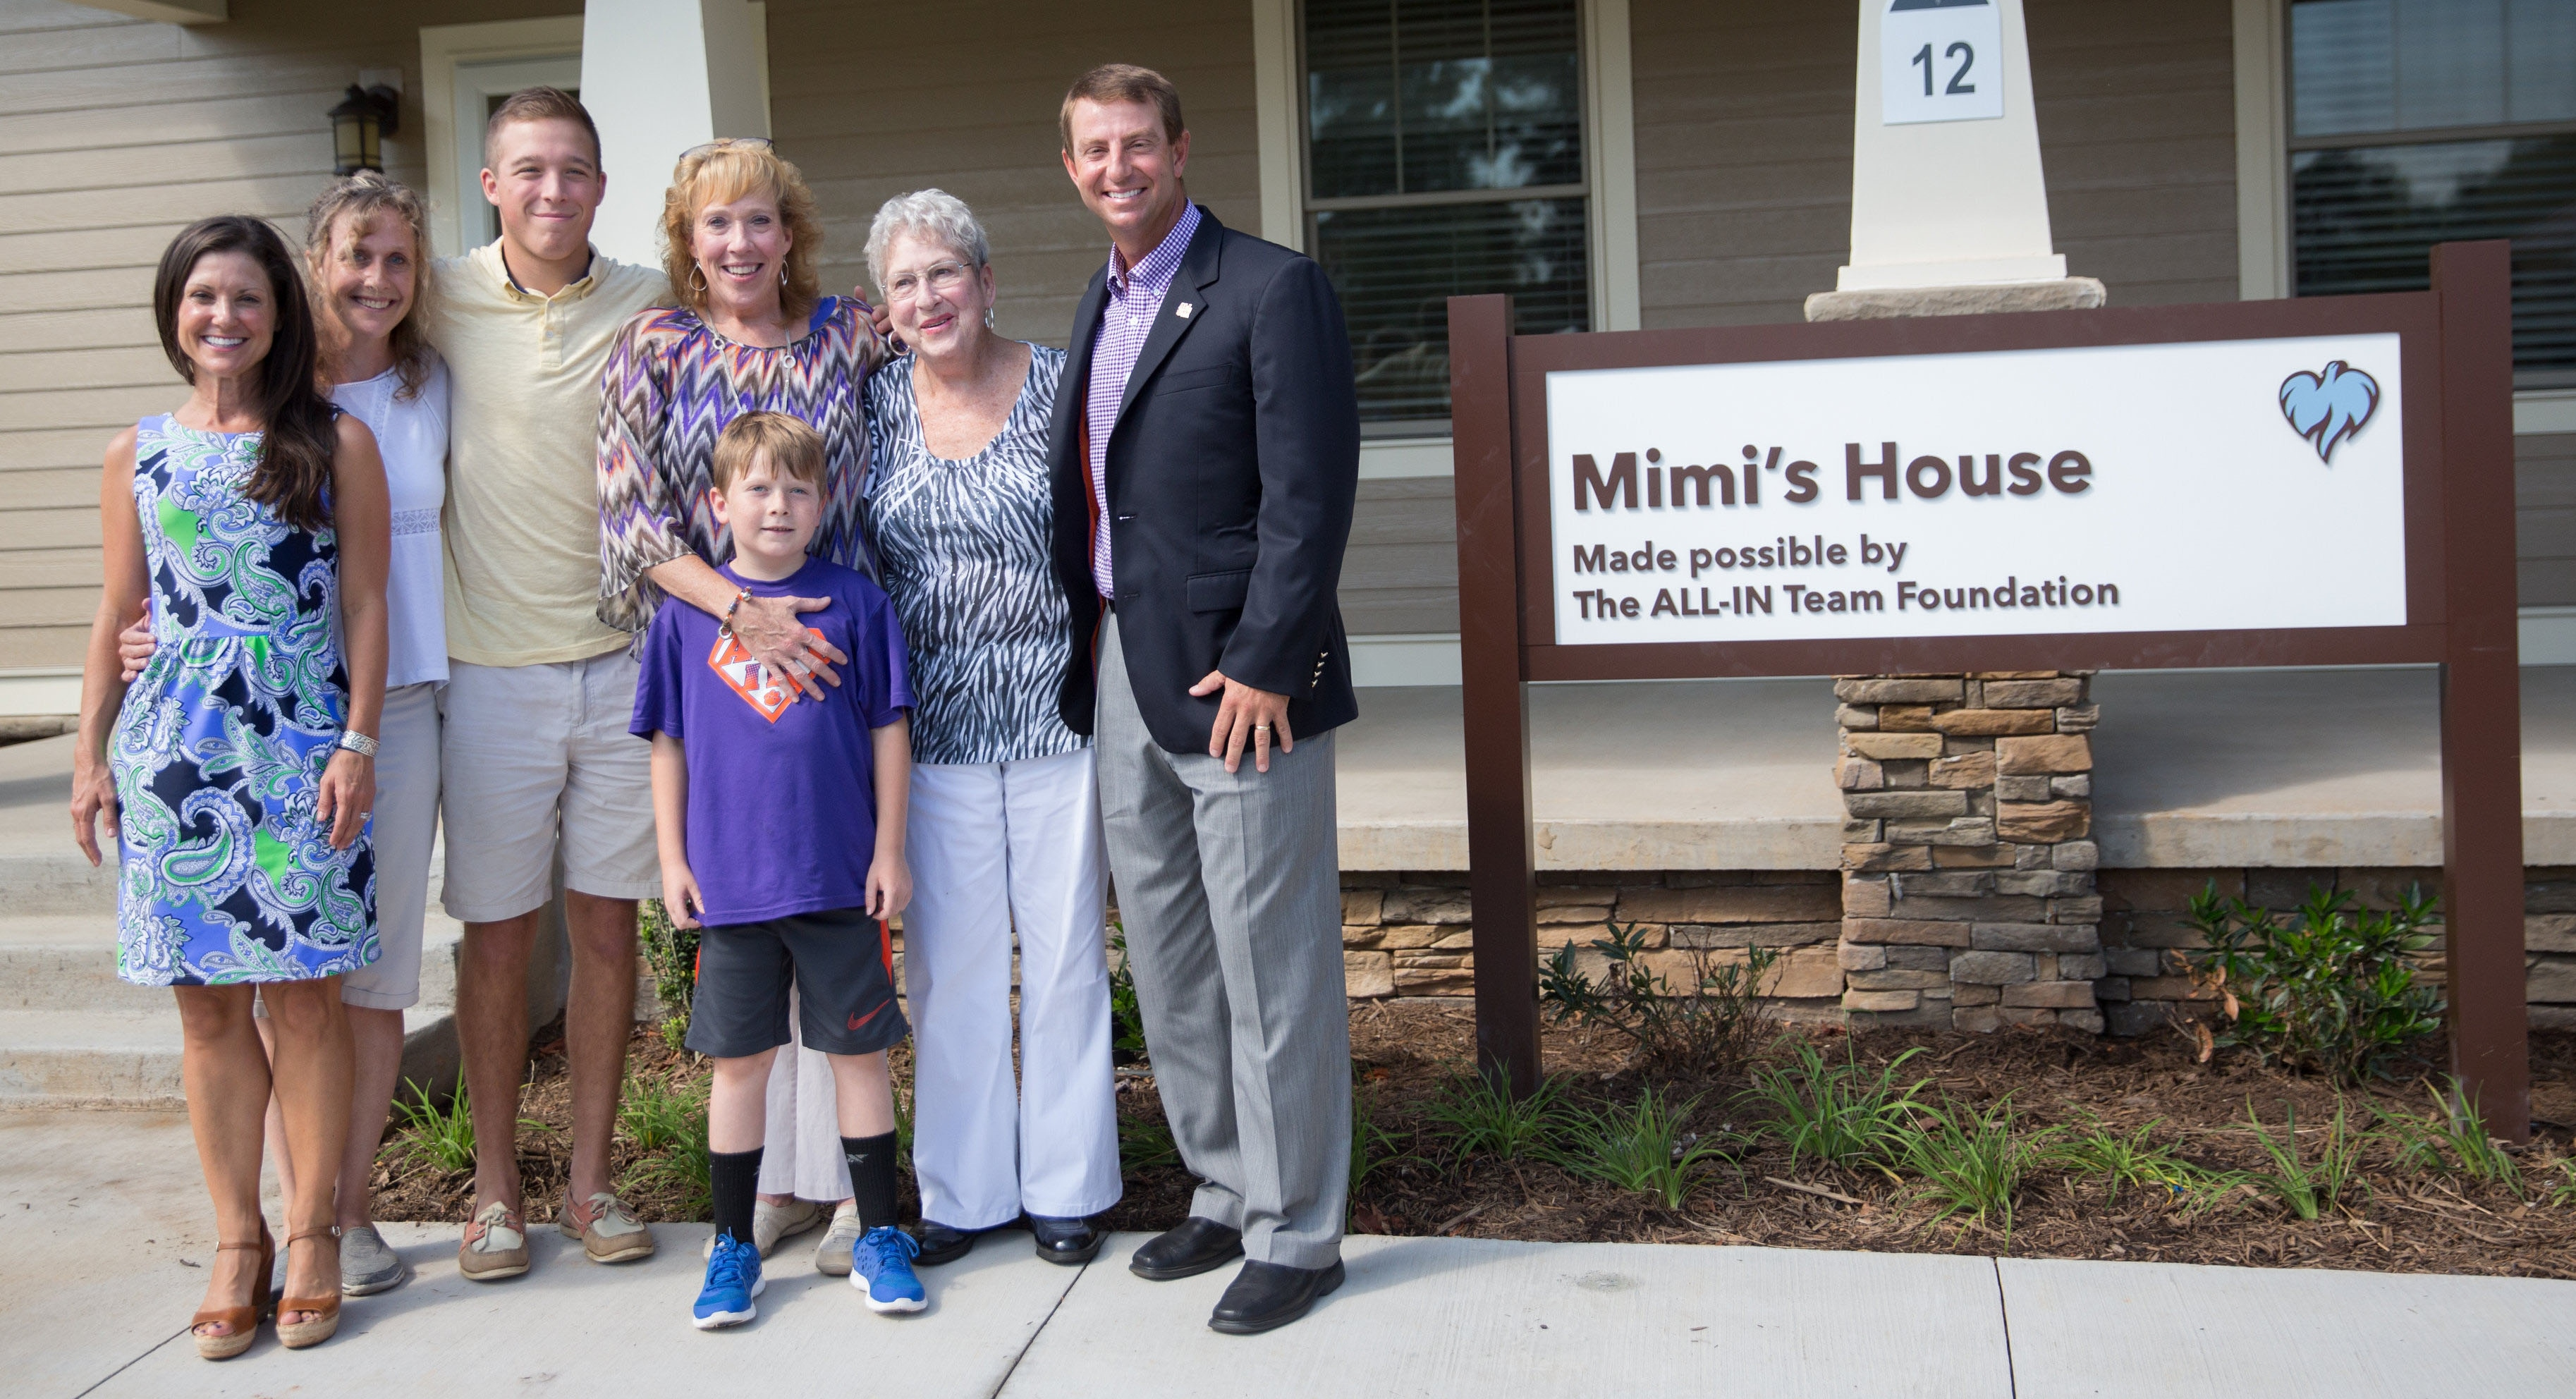 Clemson head coach Dabo Swinney (far right) and Kalthleen Swinney (far left), surprised family friend Mimi Metcalfe (fourth from the left) by naming the new safe house at Serenity Place in her honor.